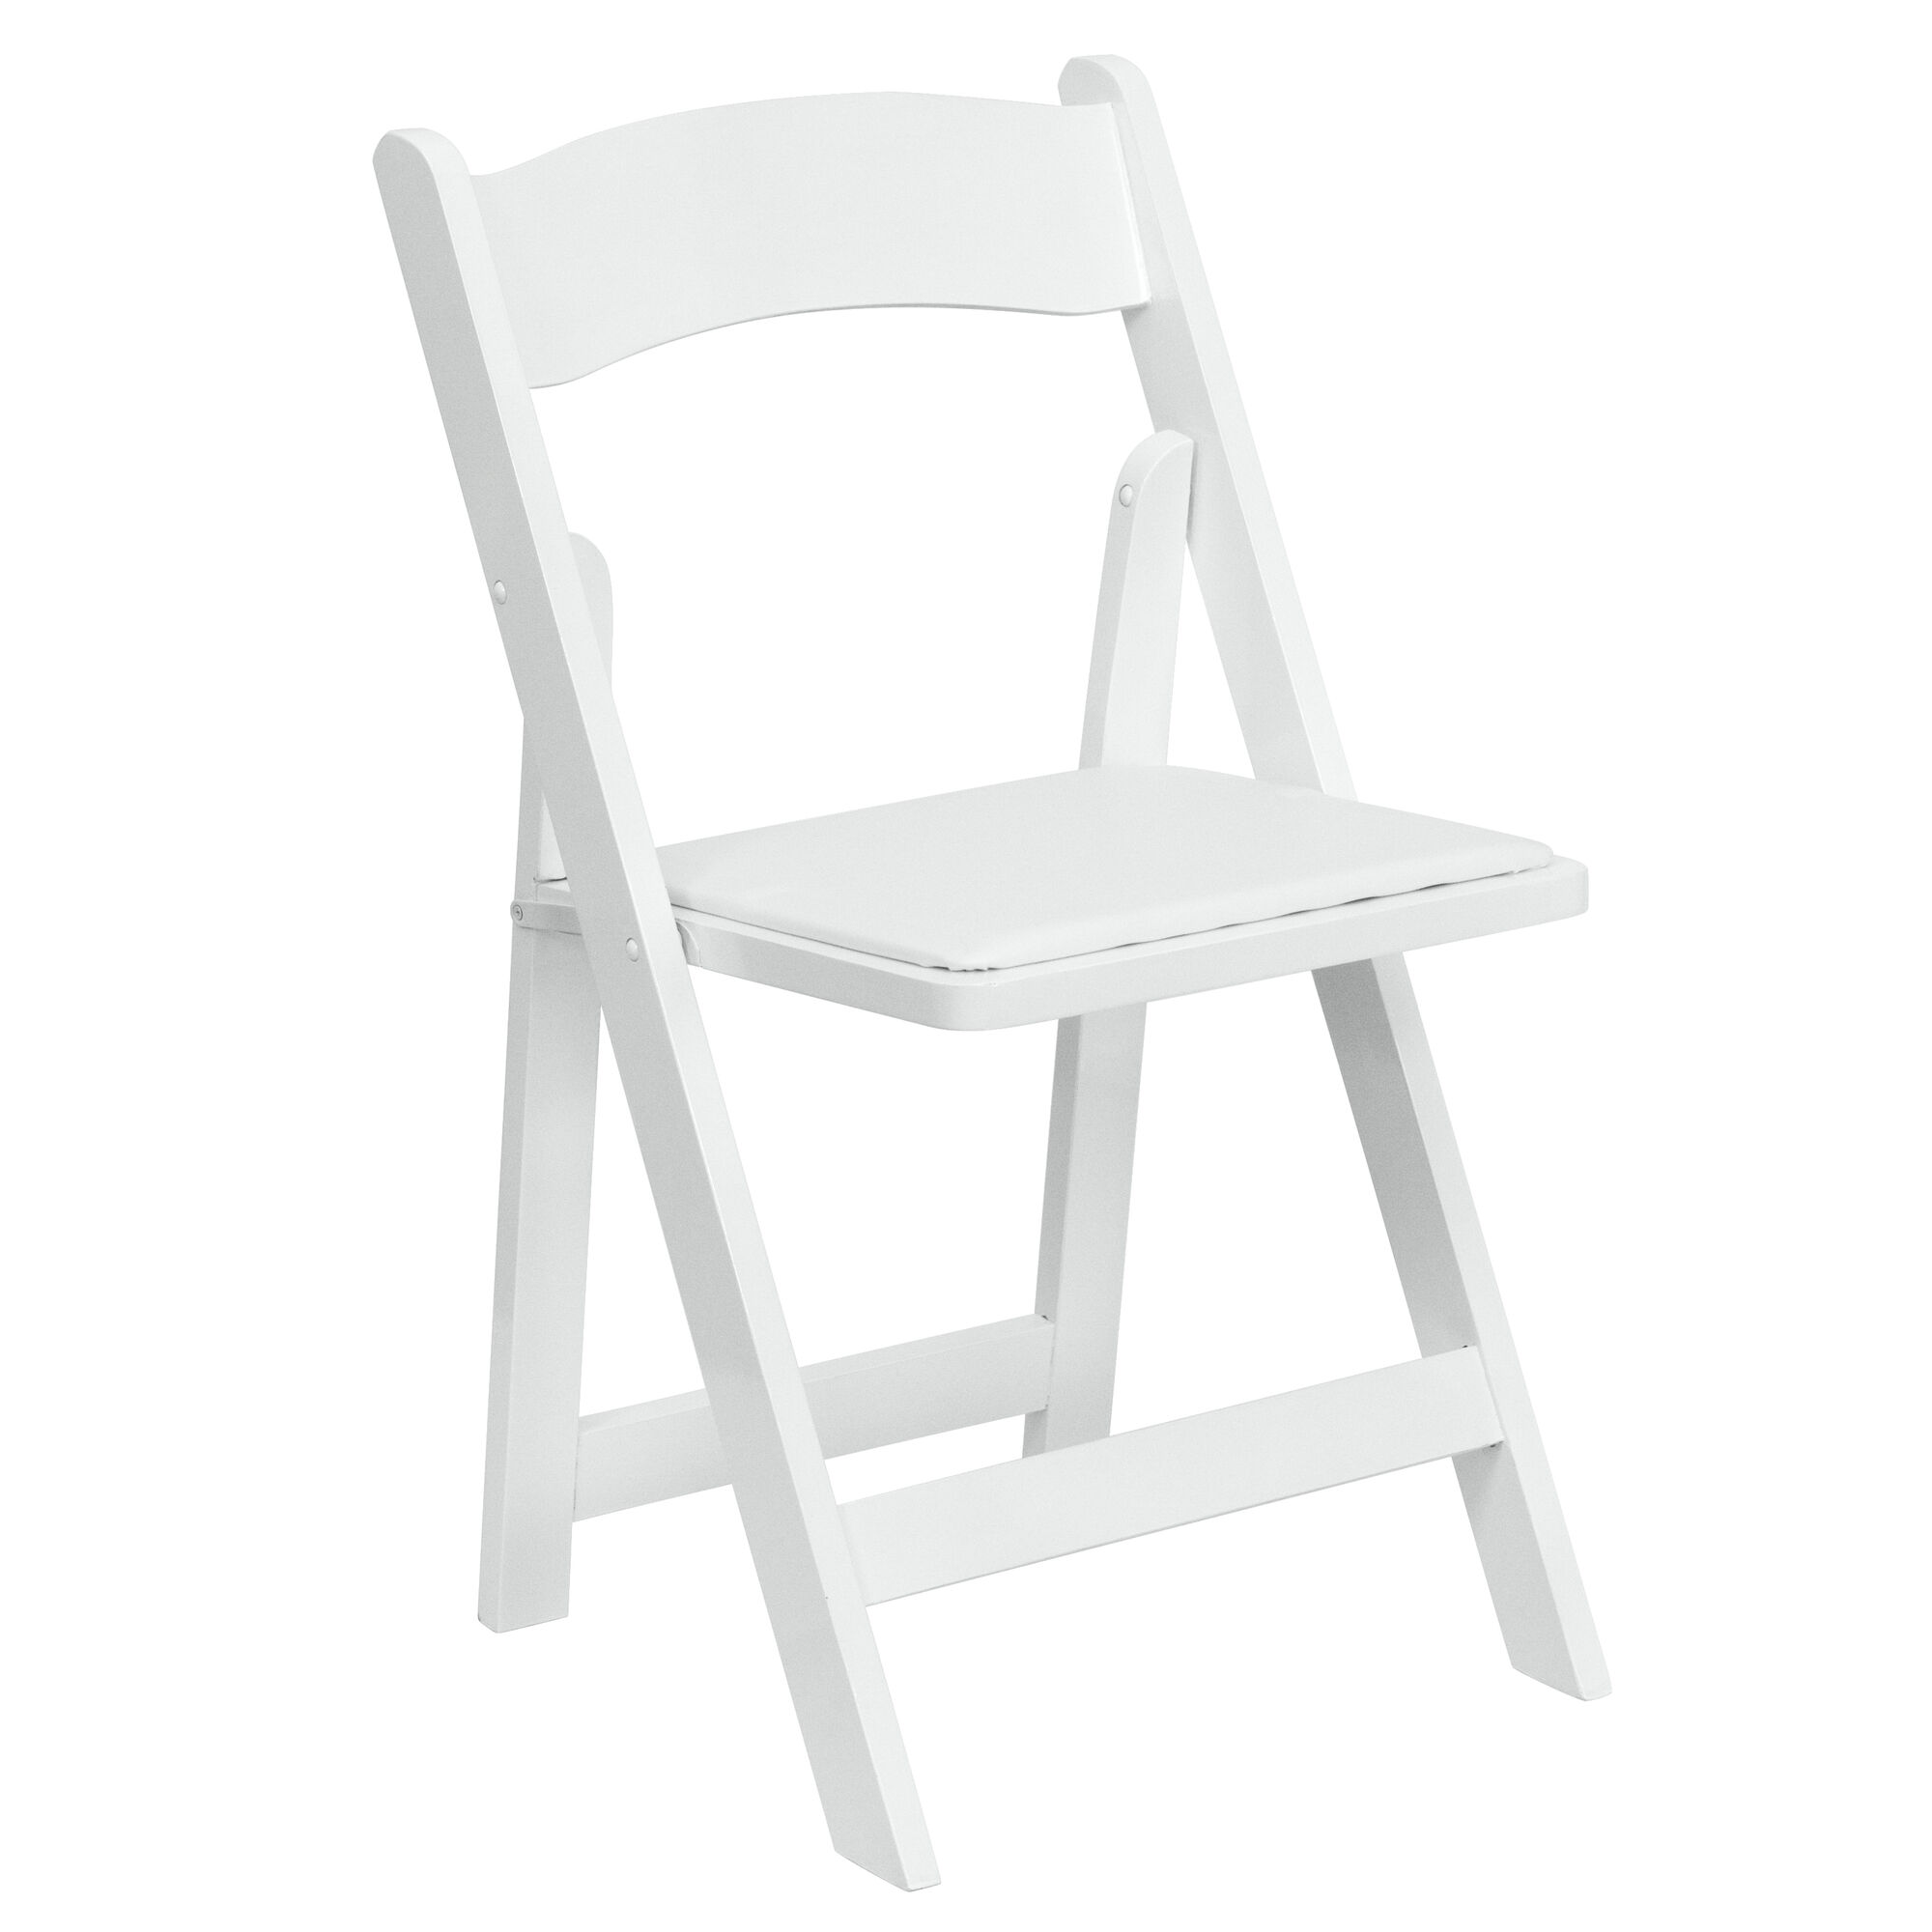 White Wood Folding Chair Xf 2901 Wh